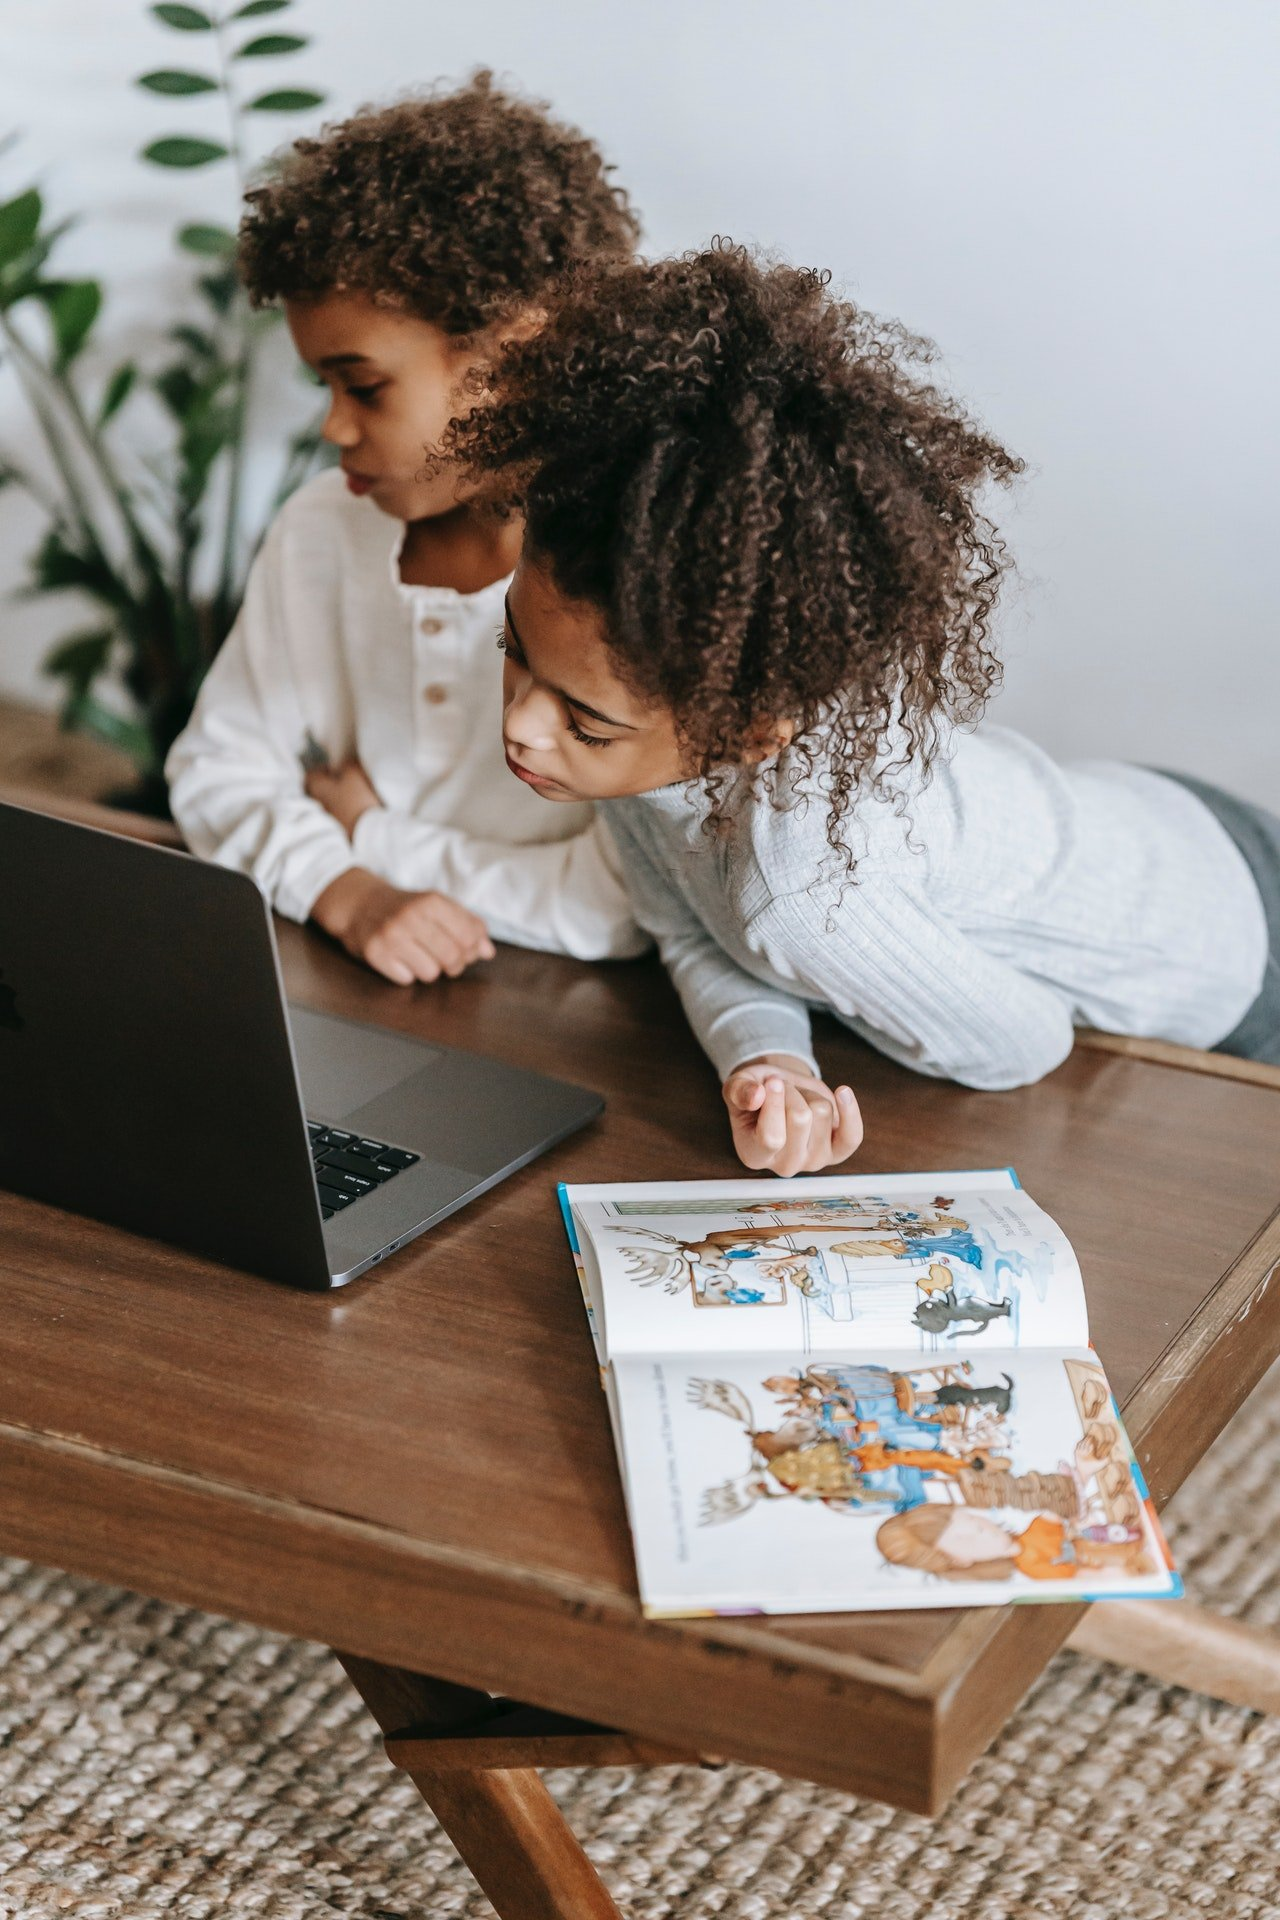 Two kids looking at a laptop   Source: Pexels